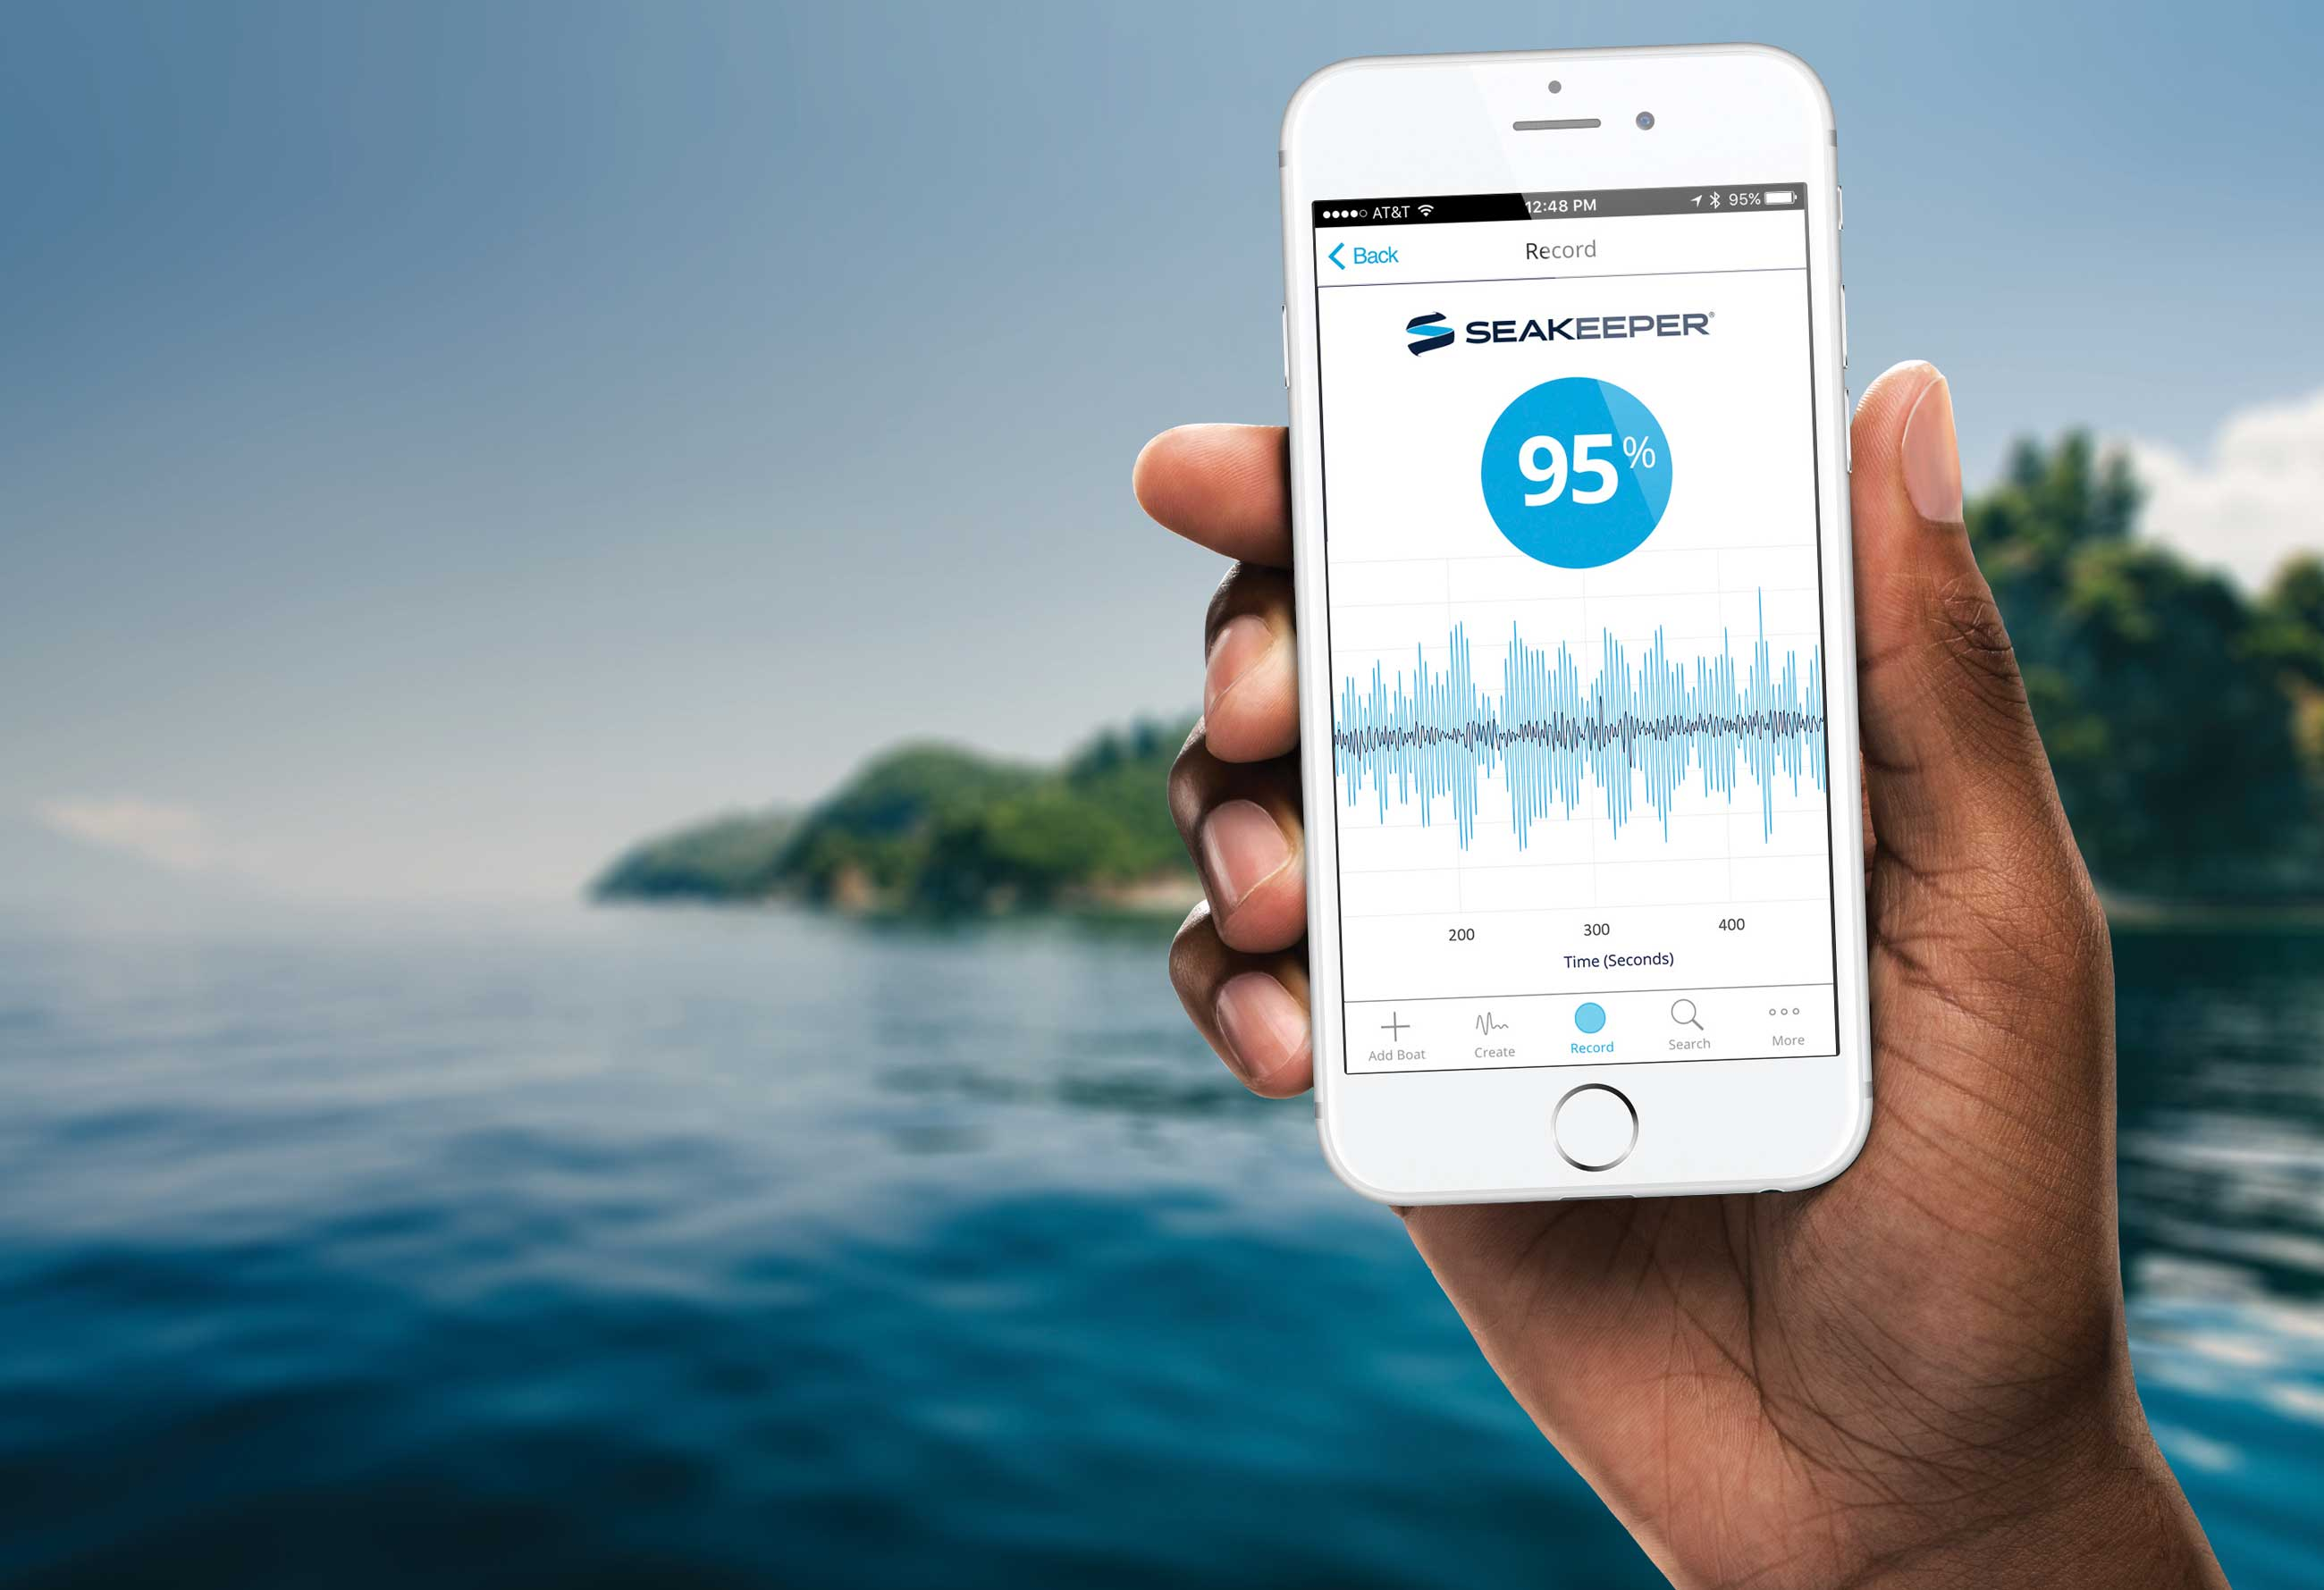 Seakeeper Mobile App Design